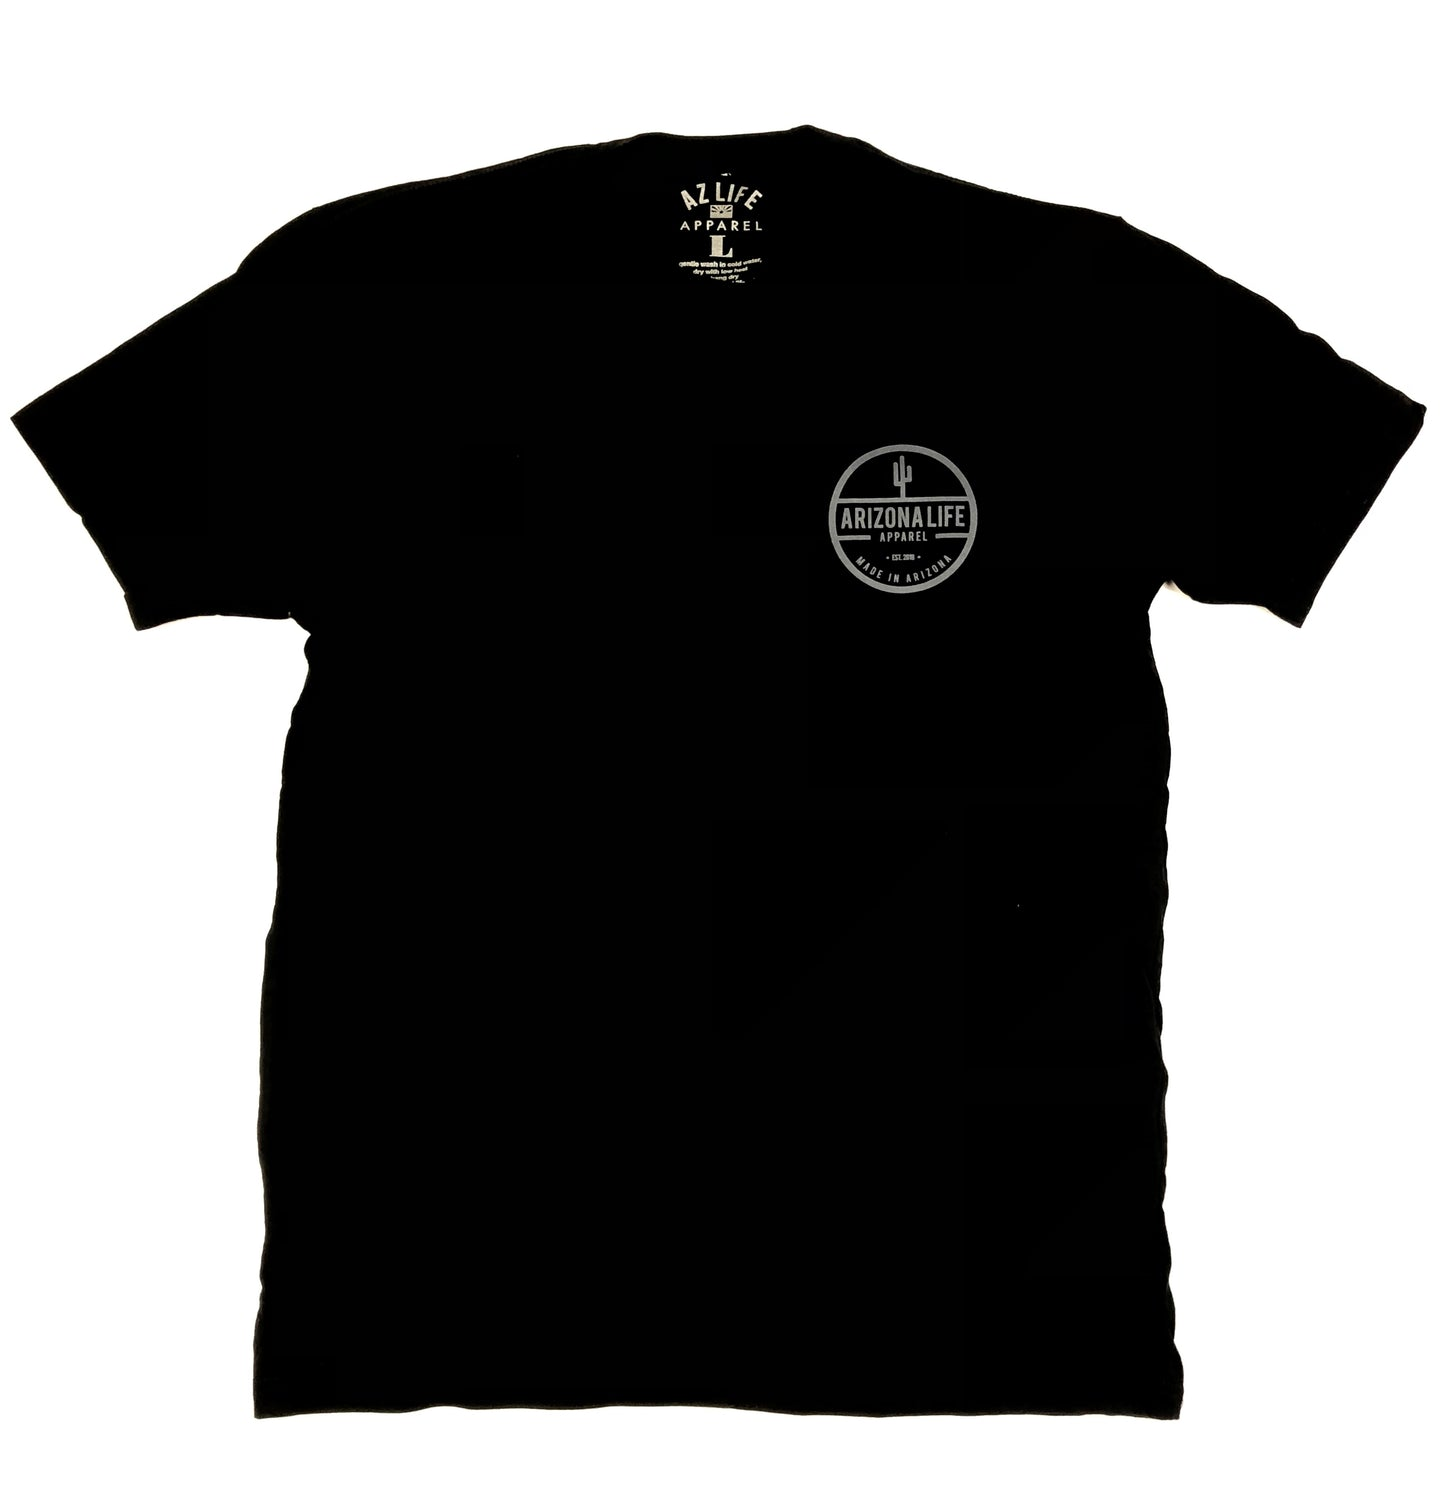 The Arizona Life Tee (black / gray)